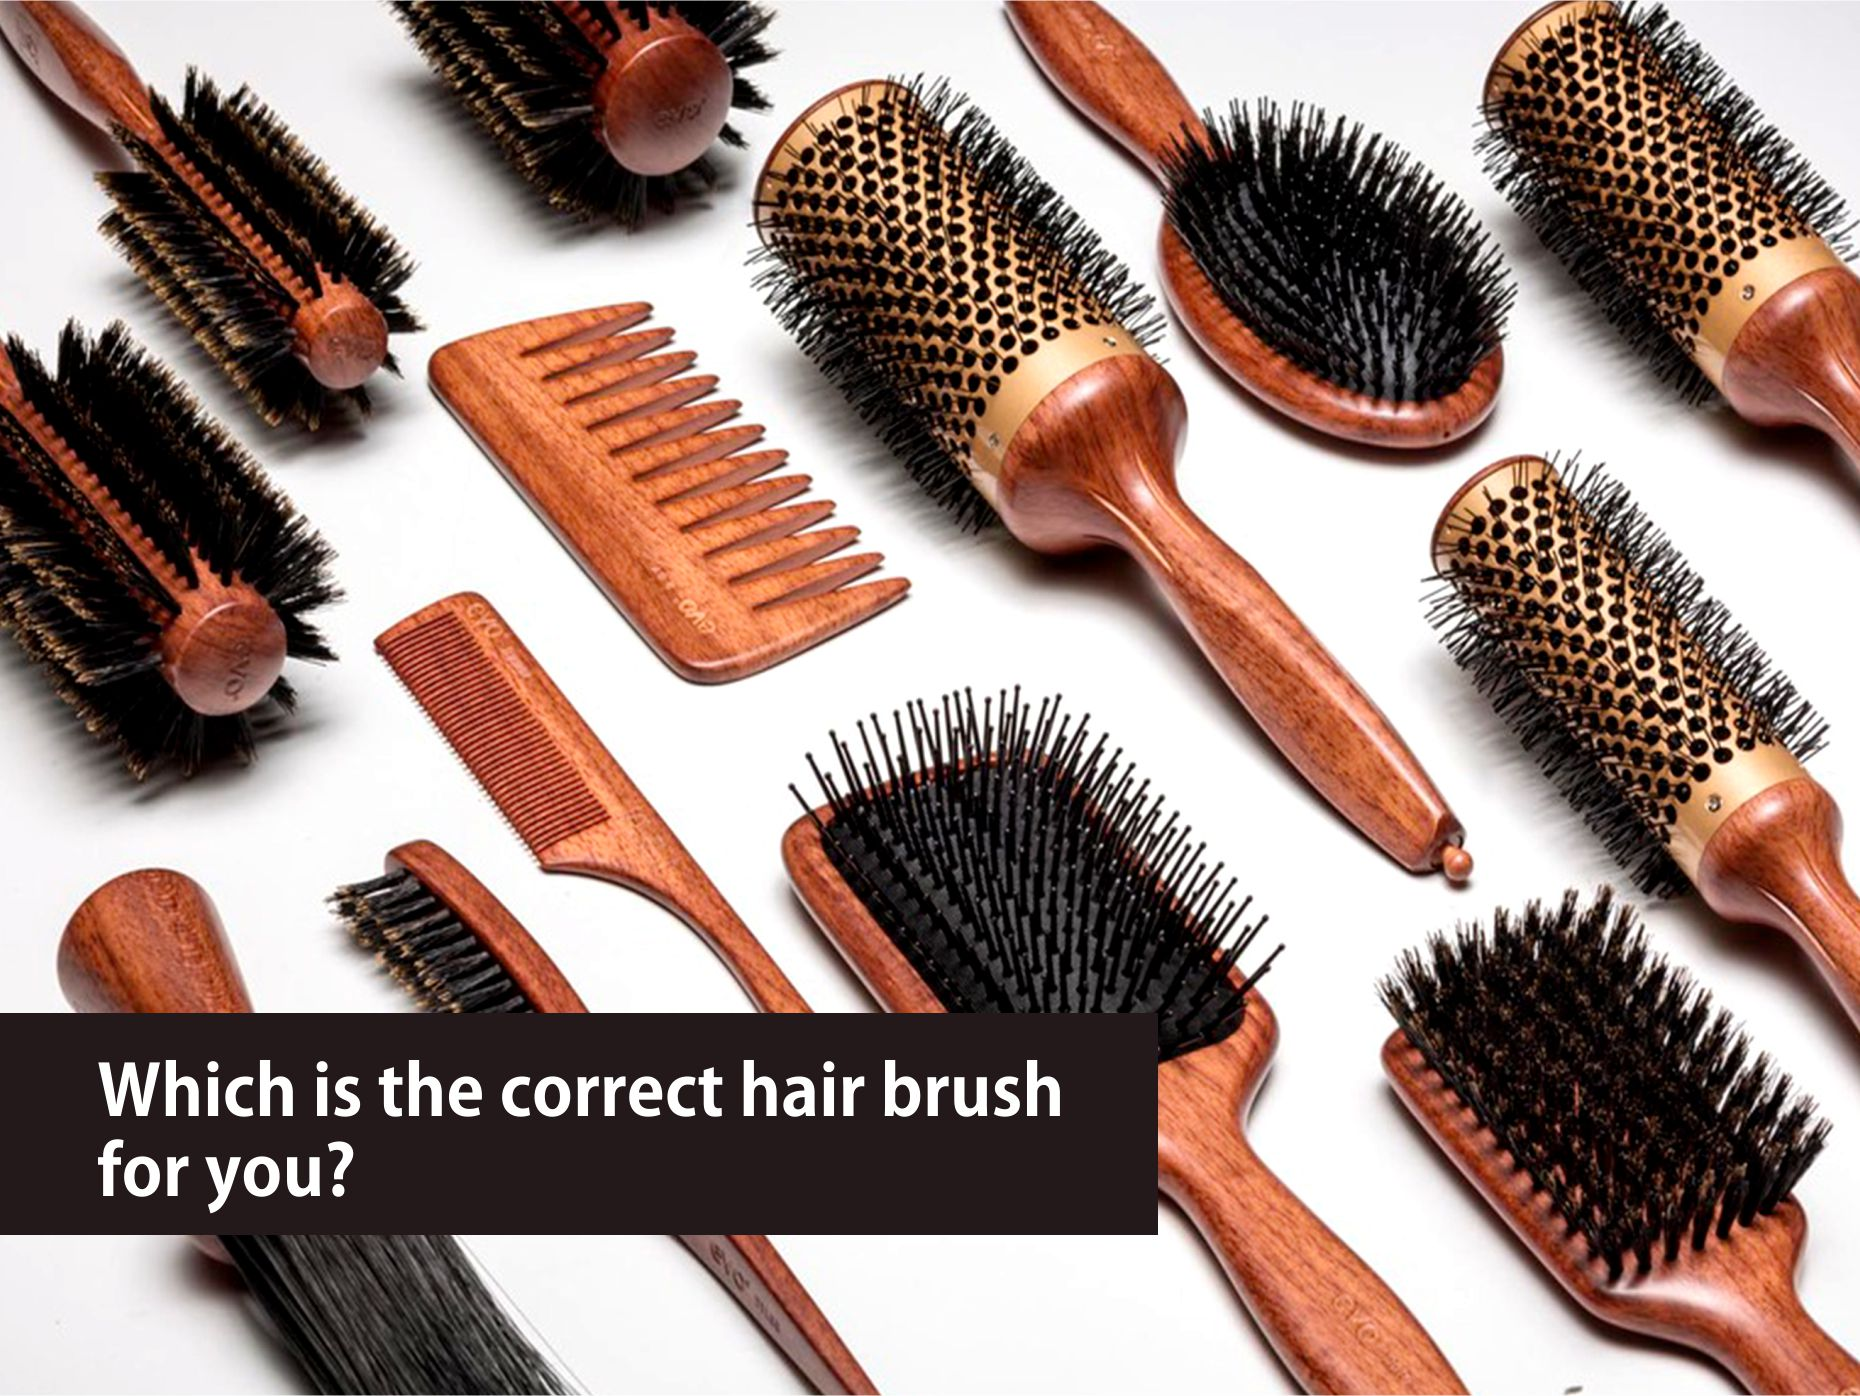 6 must-have brushes for your hair